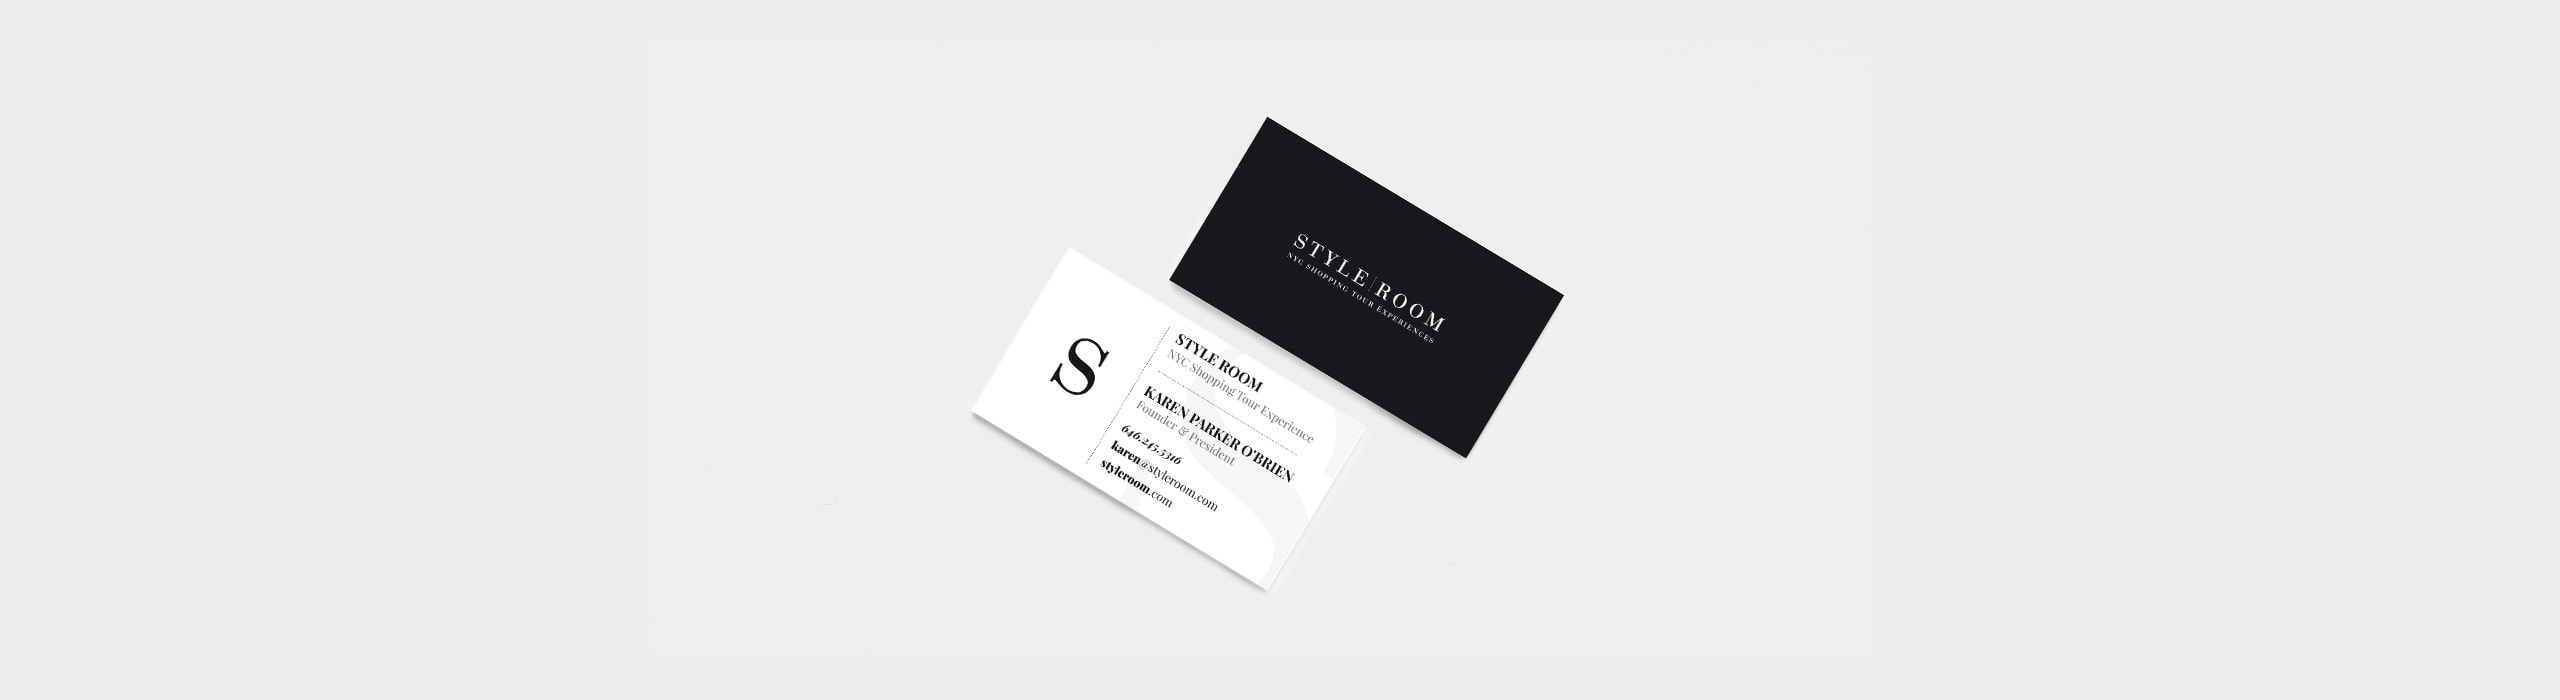 Style Room - natie-styleroom-business-cards-01 - Natie Branding Agency